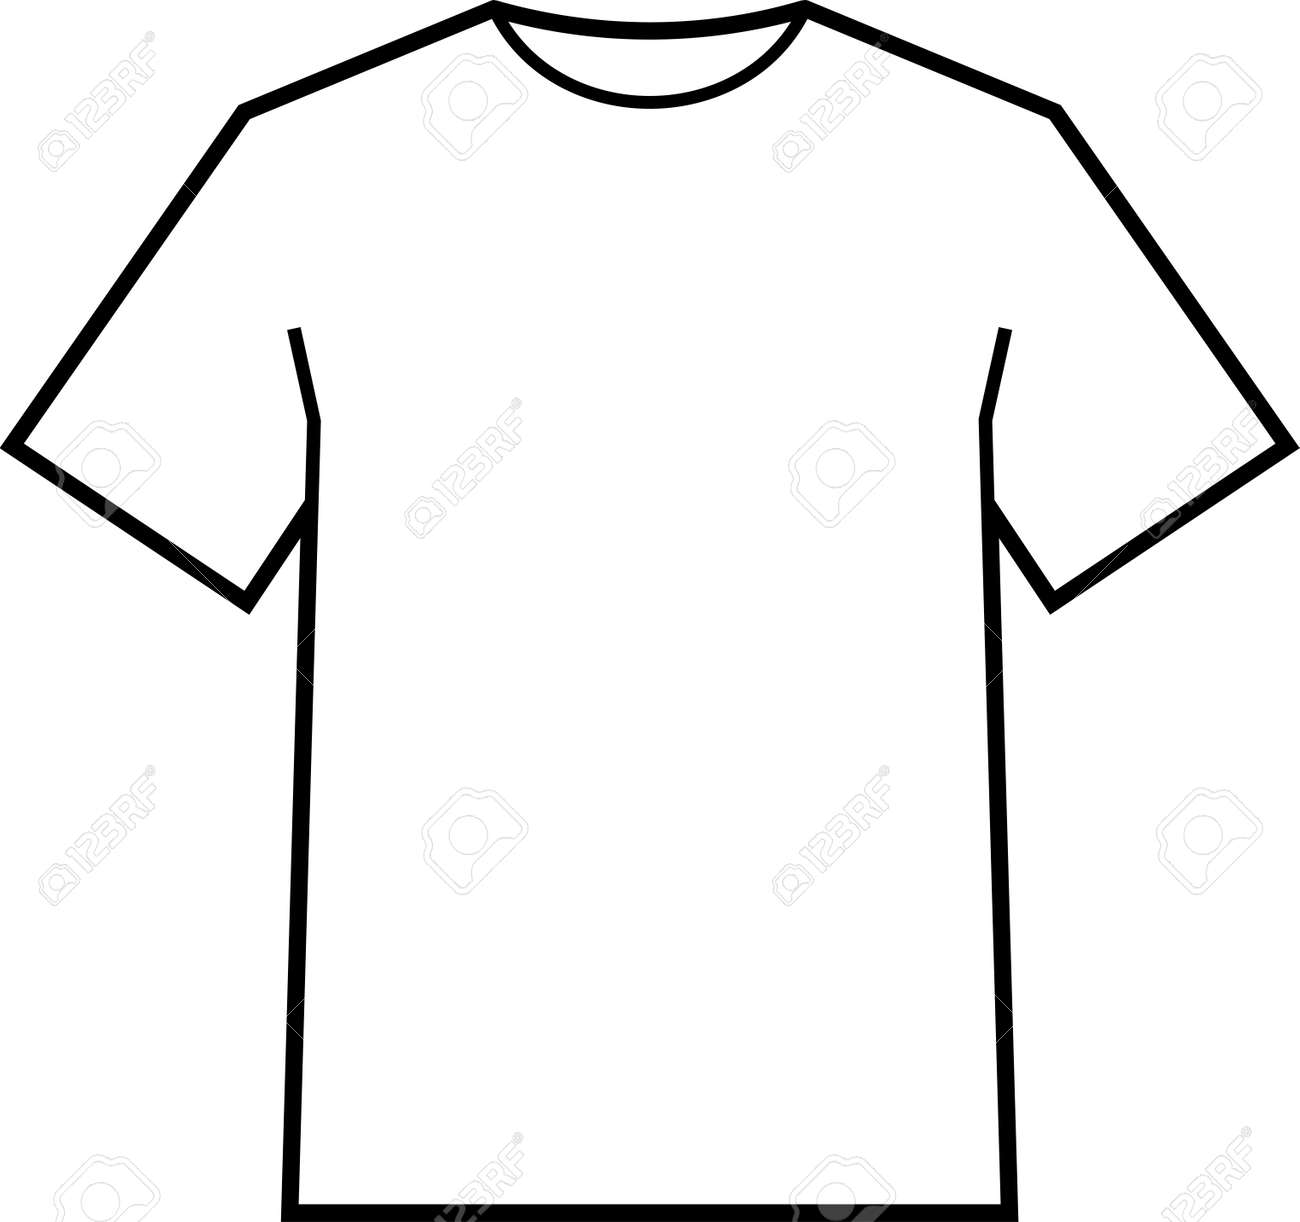 Blank T Shirt Template Vector Stock